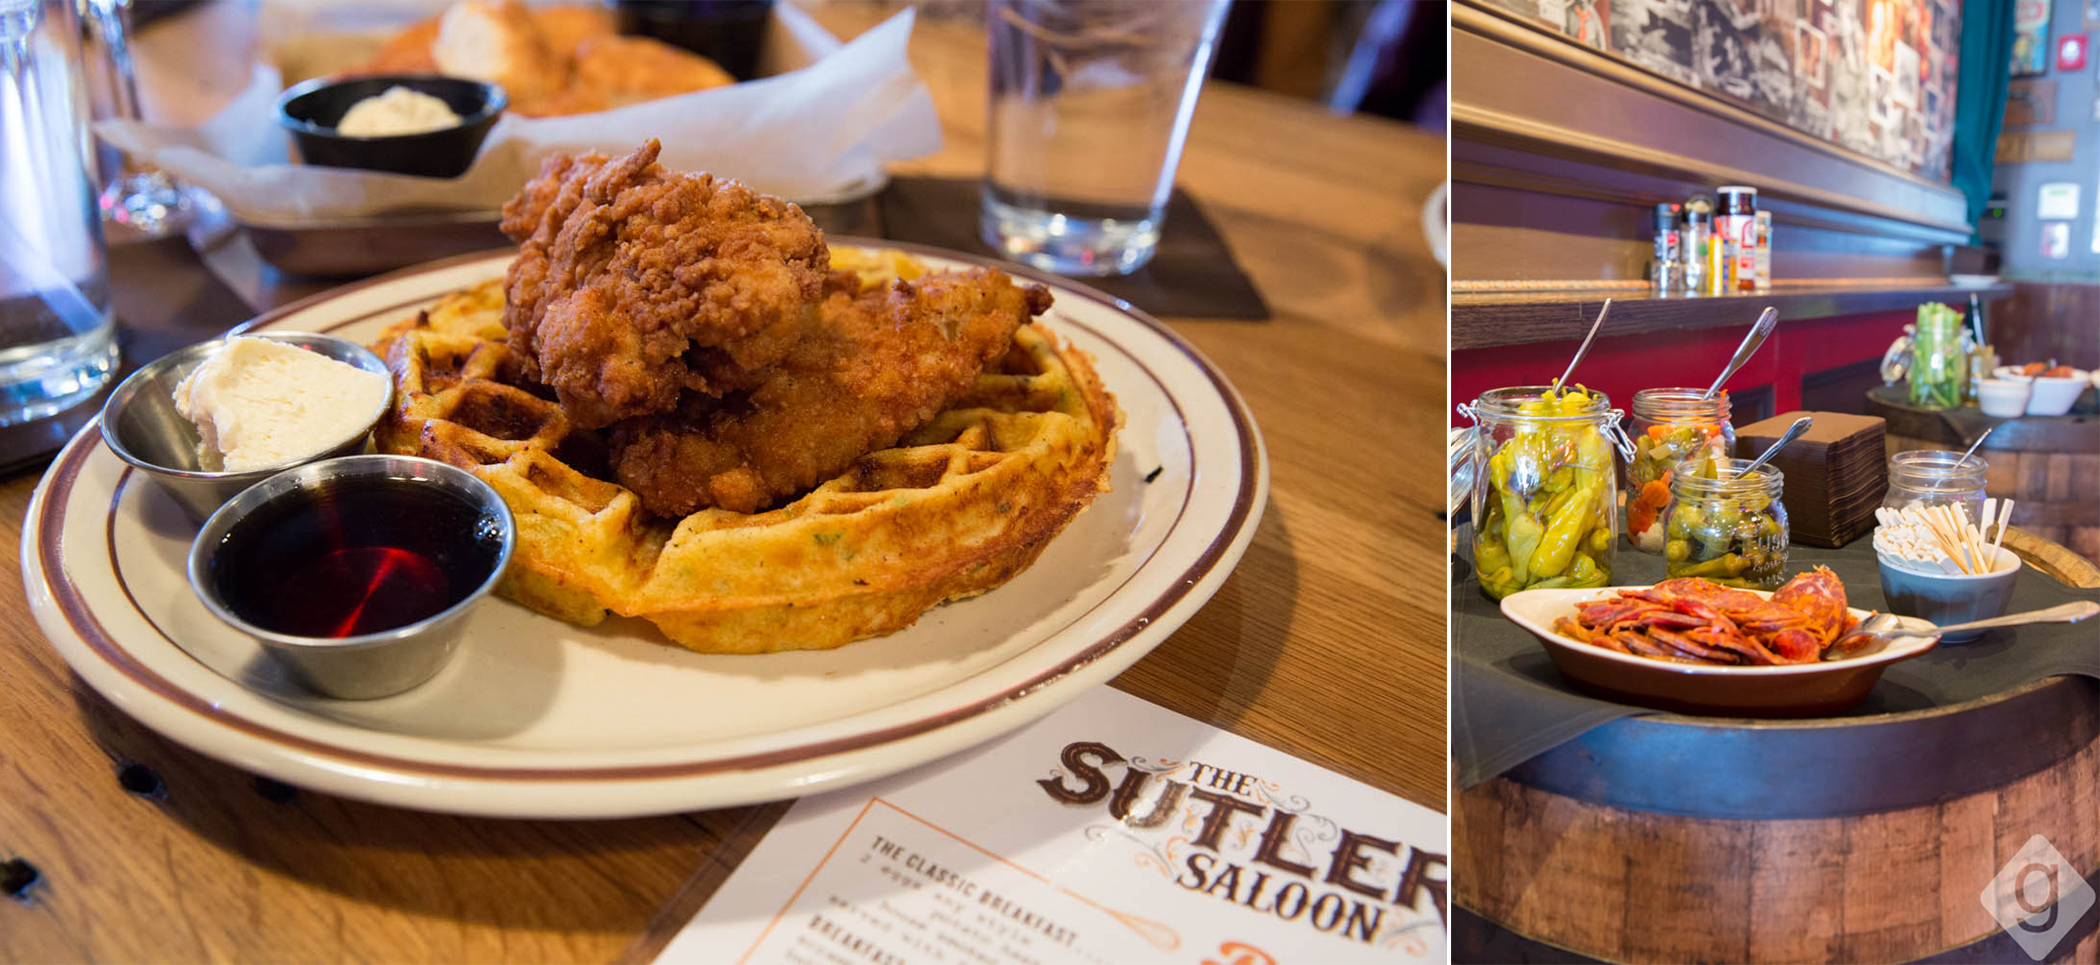 The Sutler - Chicken & Waffles